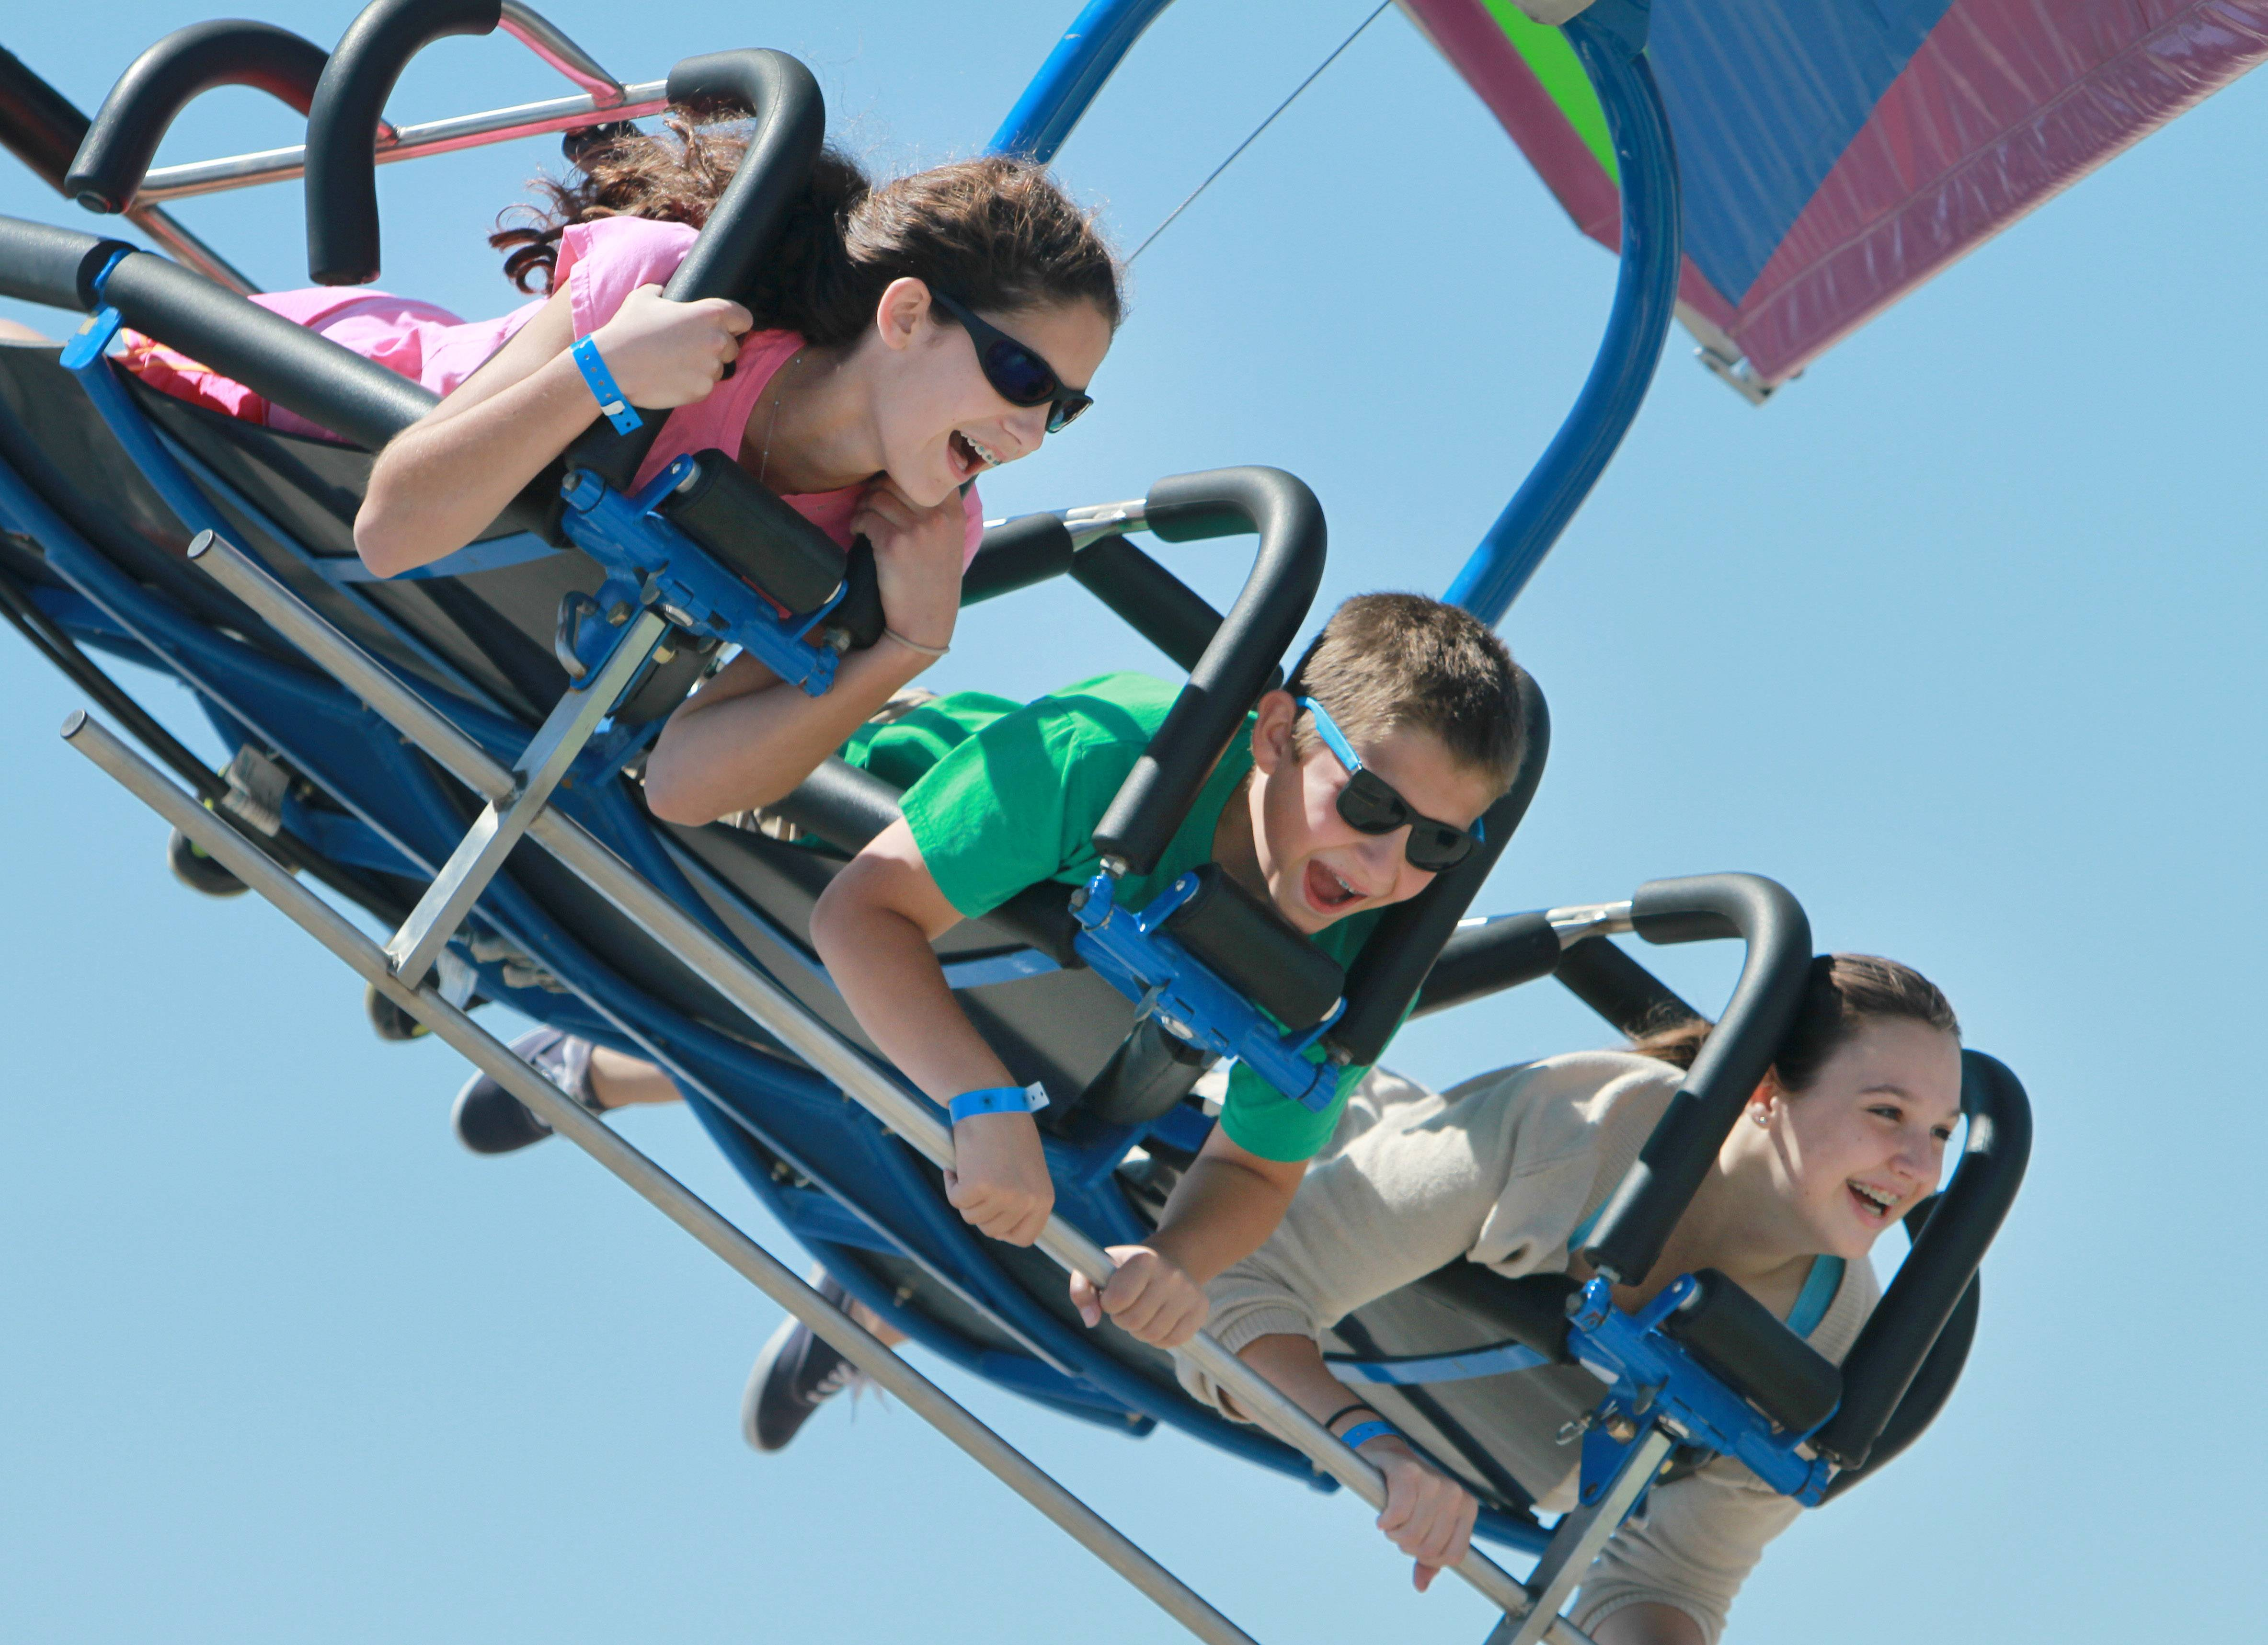 From left, Luna Ventura, 13, Enzo Ventura, 10, and Nora Maihack, 14, all of Grayslake, ride the Cliff Hanger Thursday at the Lake County Fair in Grayslake.